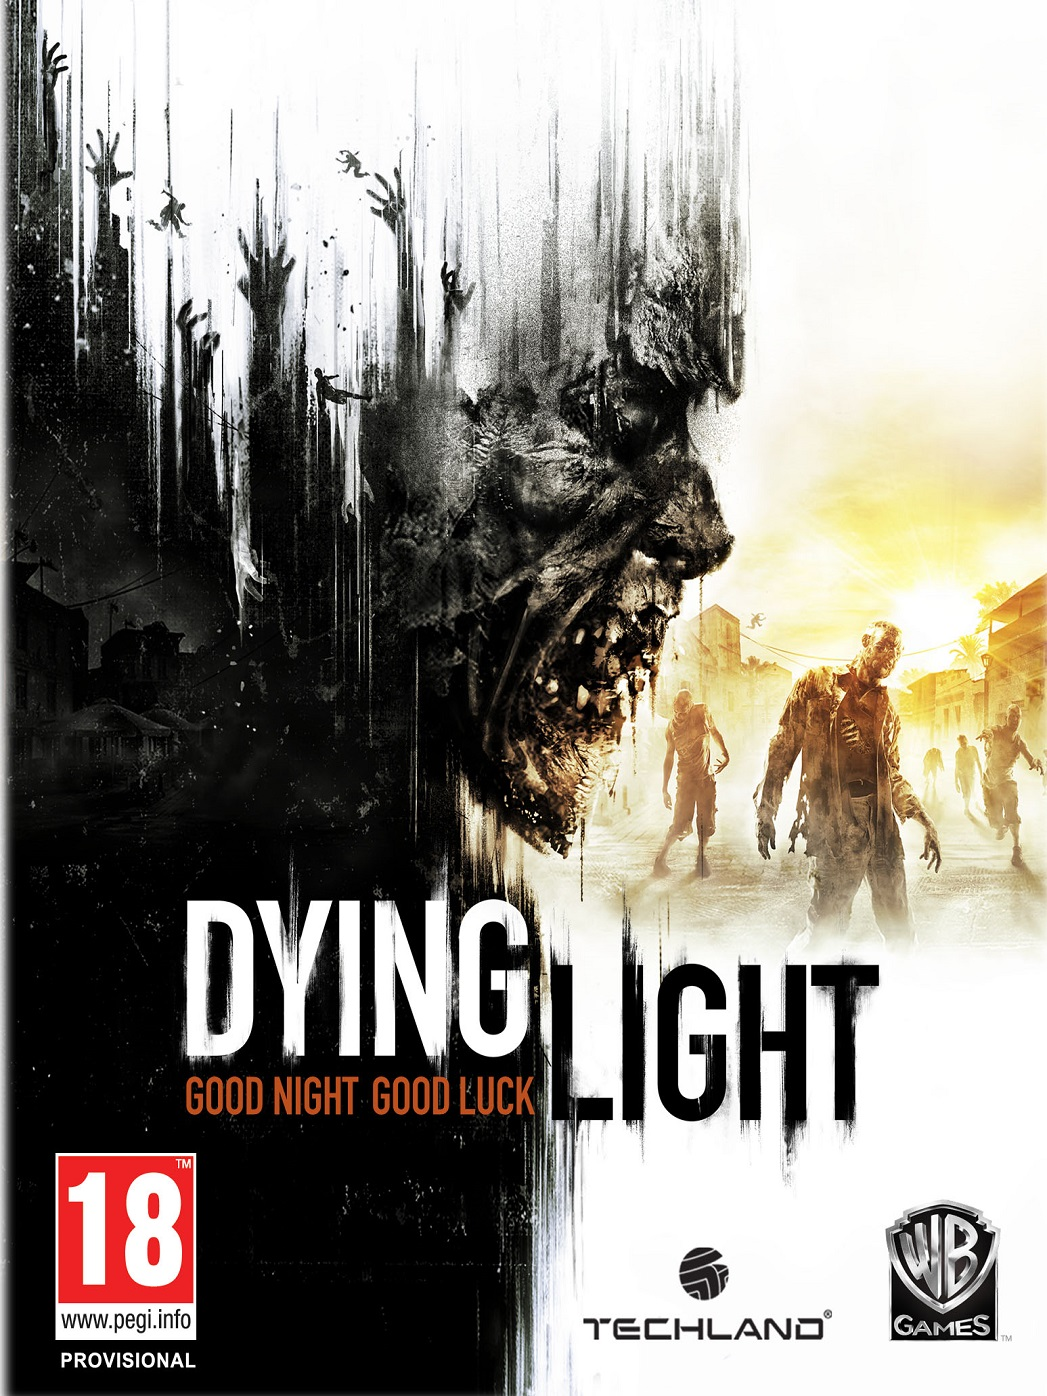 Zombie survival game for ps3